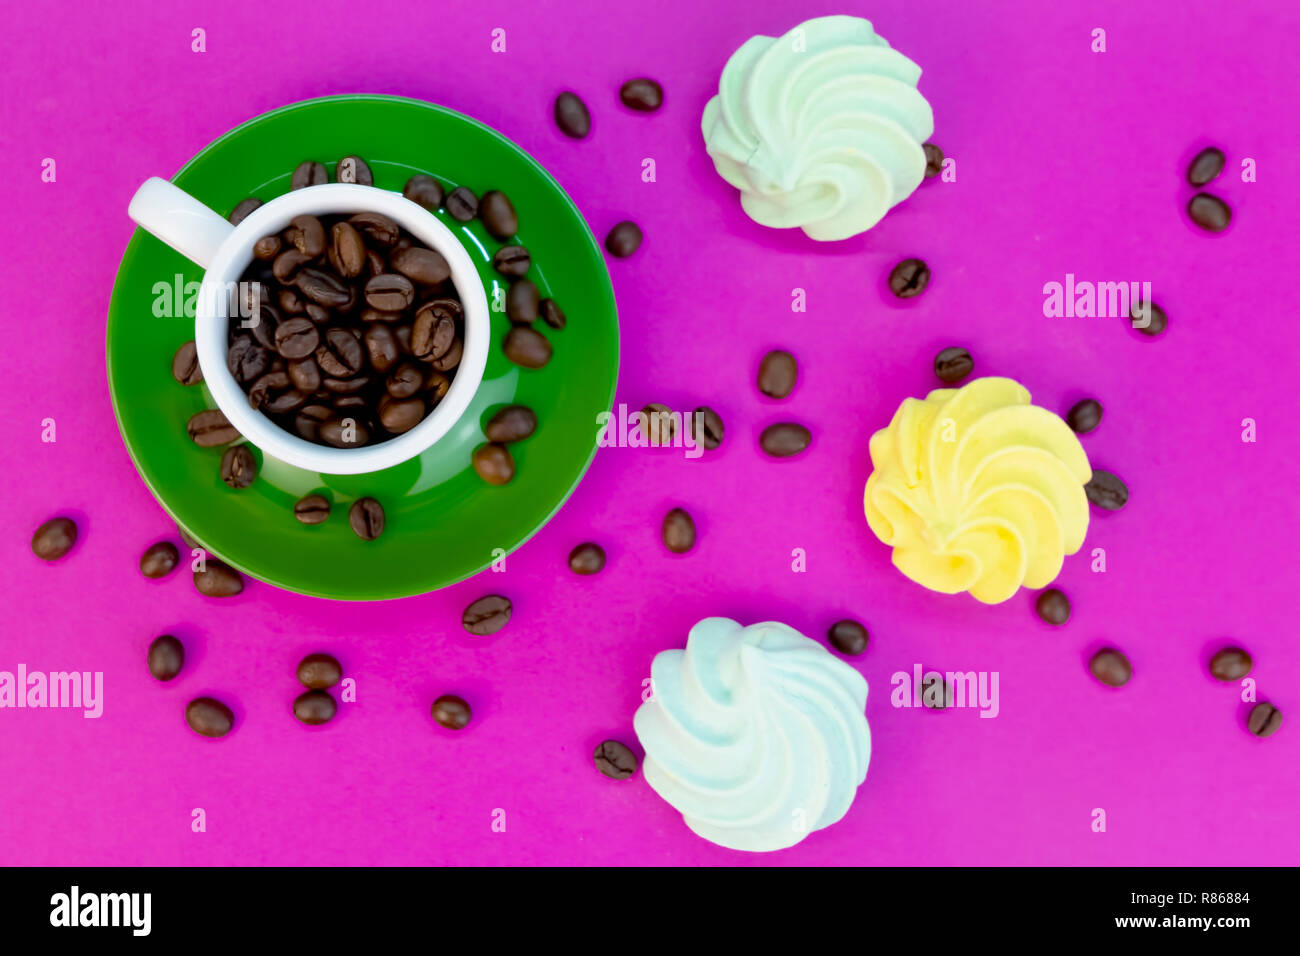 Coffee beans in cup on hot pink table with sweets, concept photograph with vivid colors Stock Photo